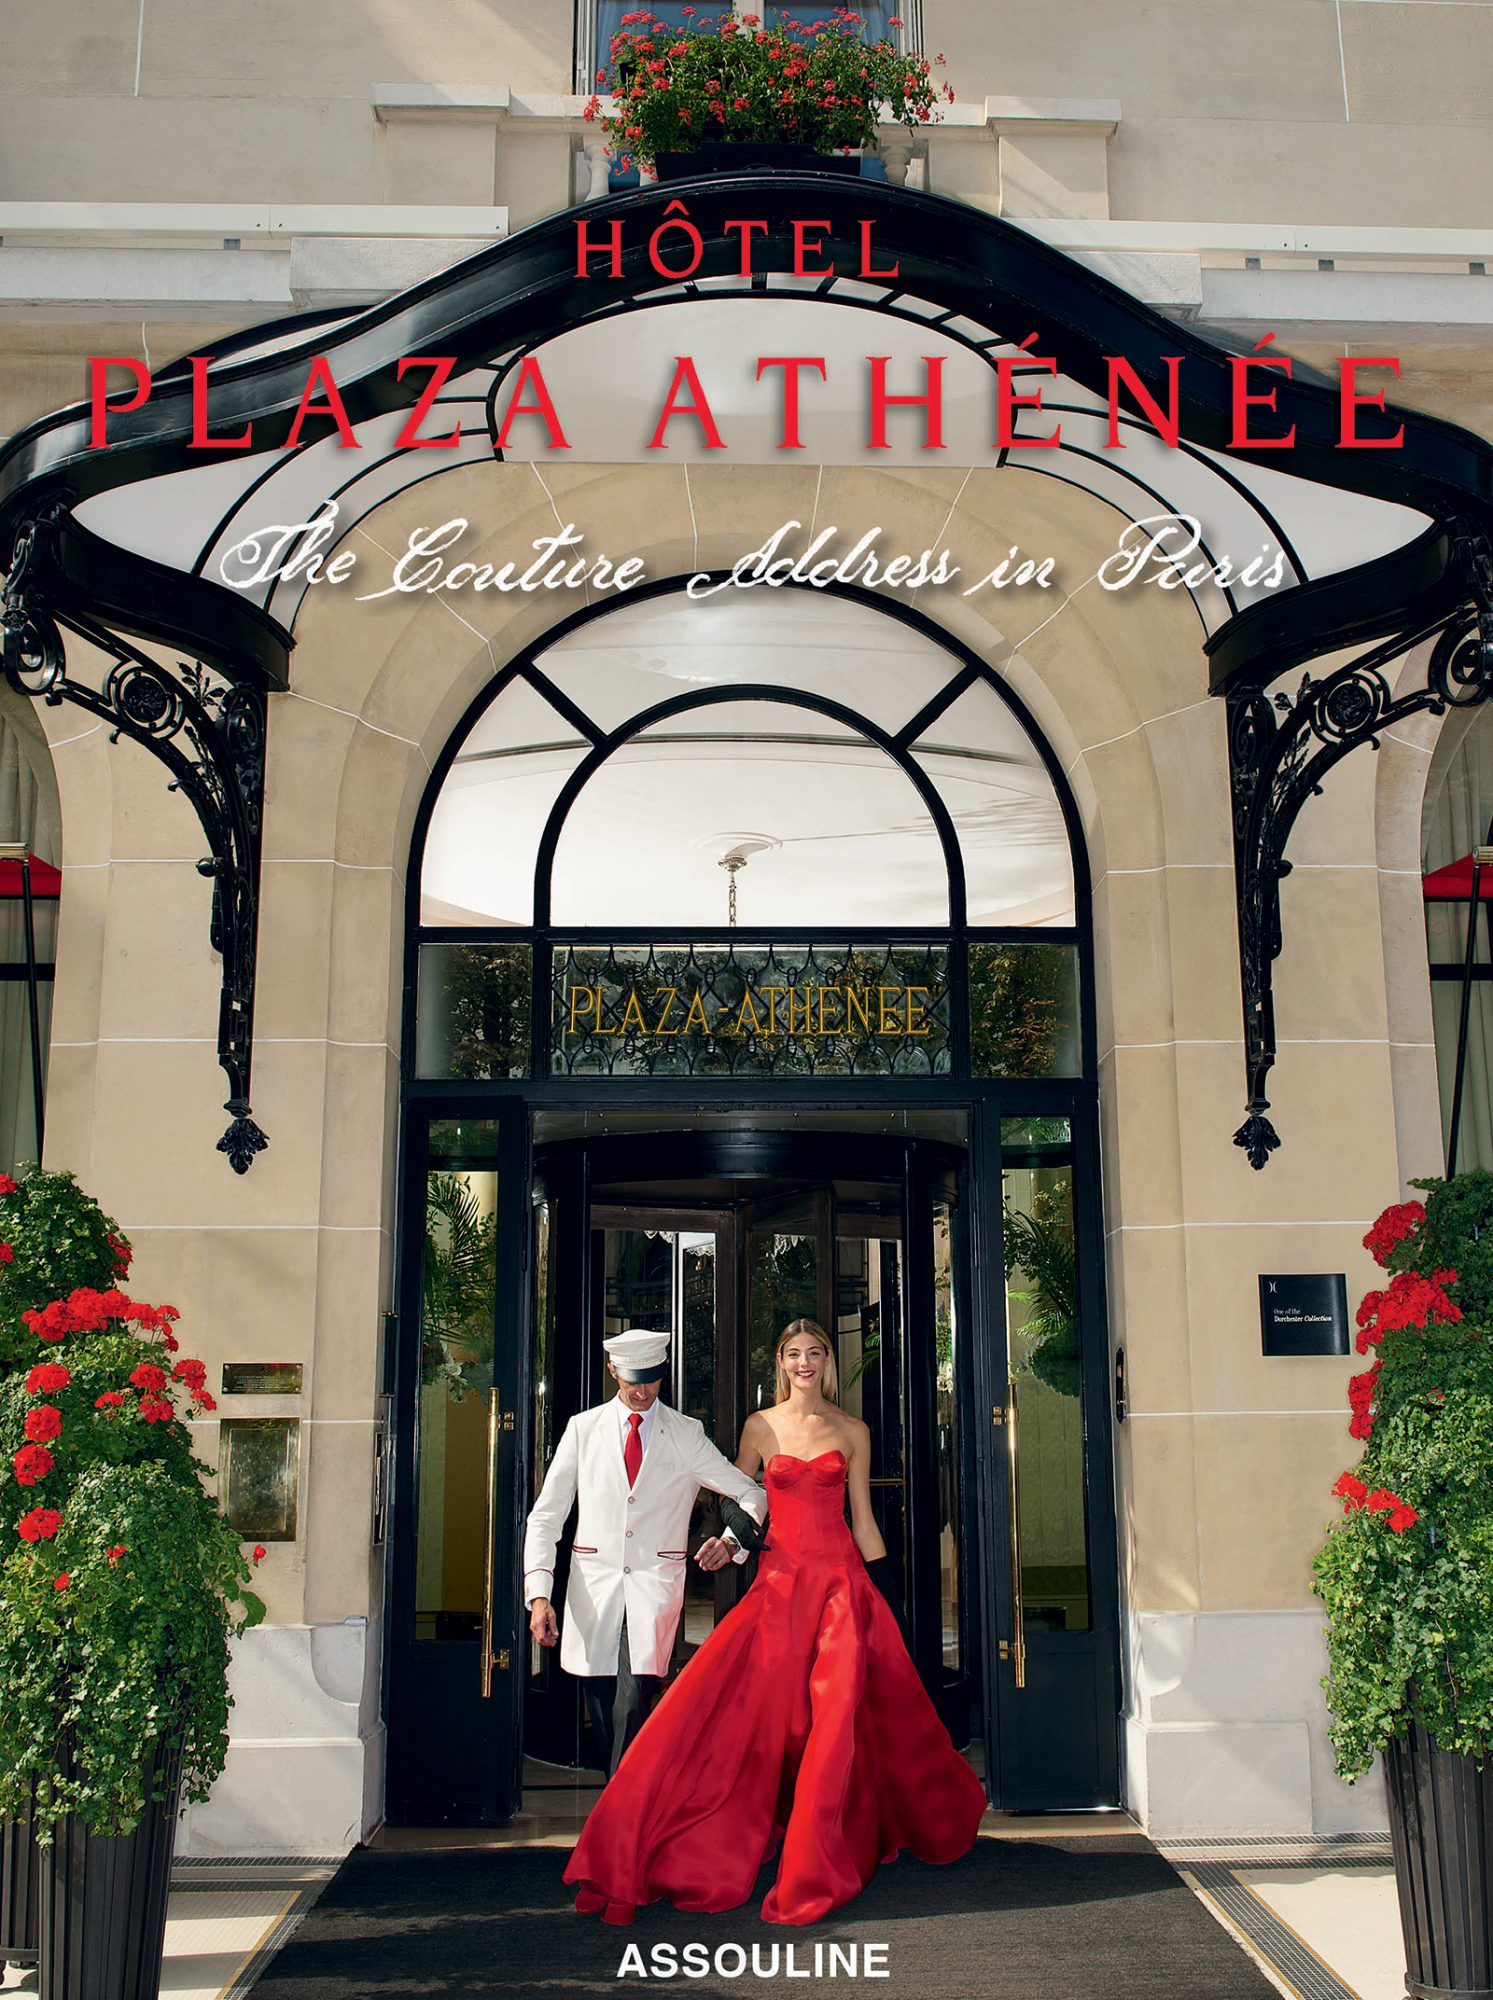 In Pictures 100 Years Of Paris Beloved Hotel Plaza Athénée Travel Leisure